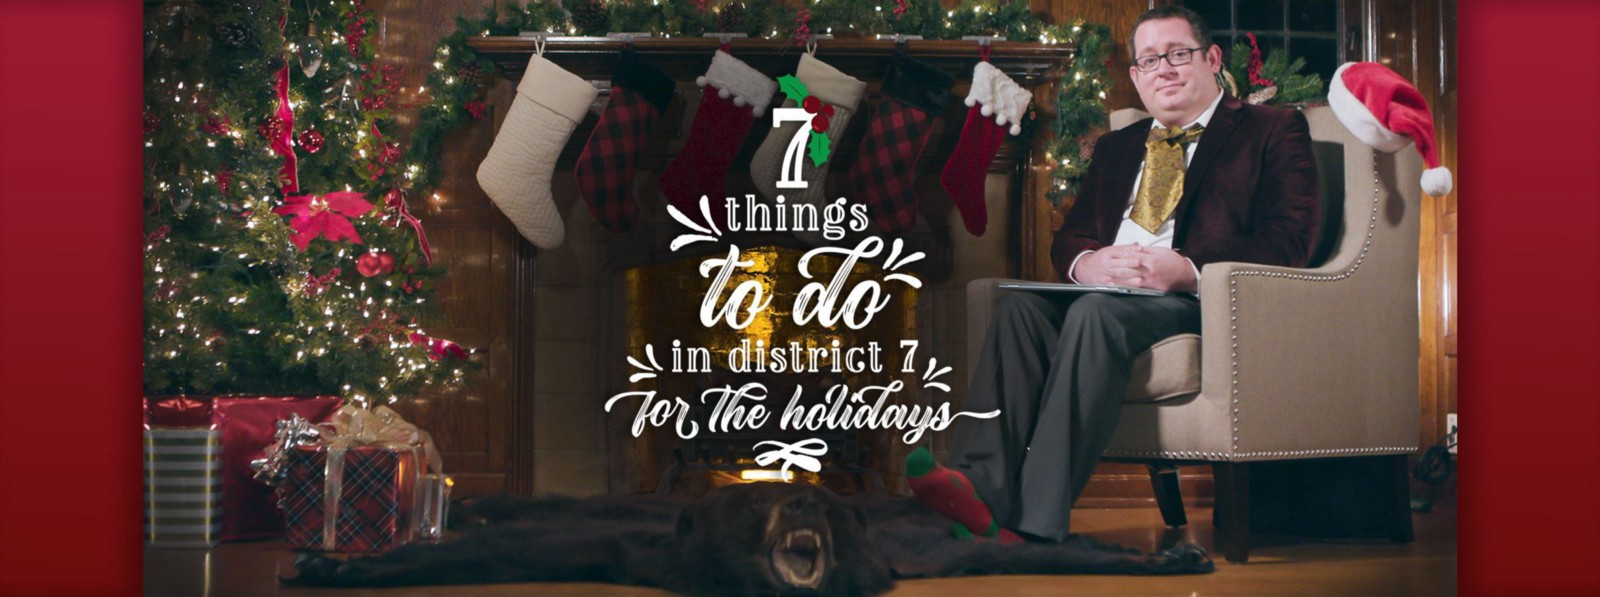 Councilmember Derek Young sitting next to a fireplace, Christmas tree, with over the top decorations and clothes, promoting 7 things to do in District 7 for the Holidays.